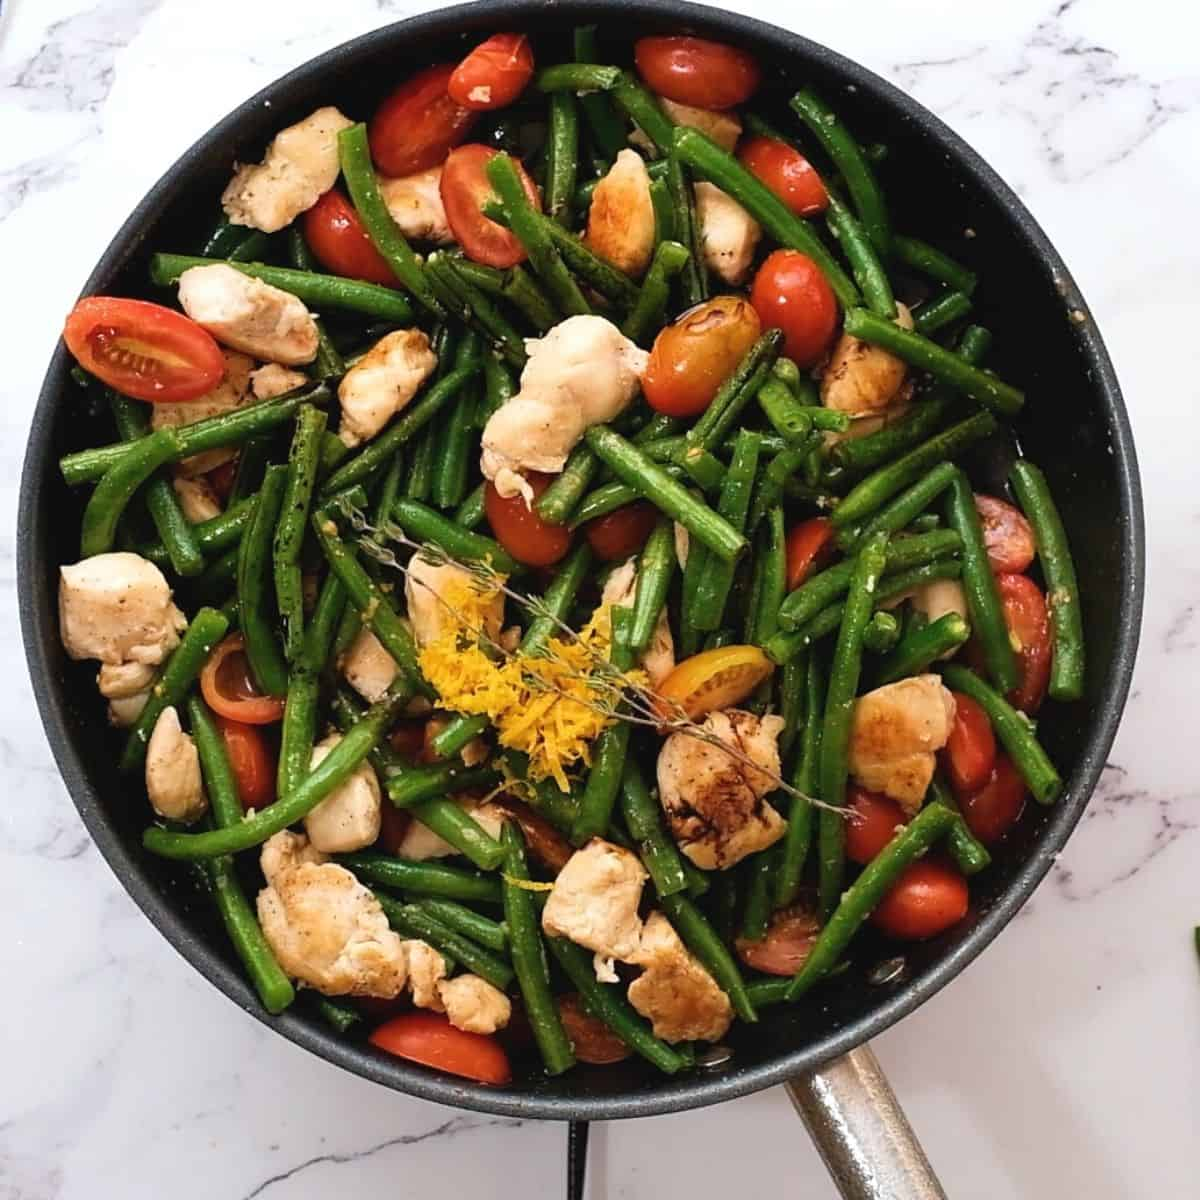 Chicken with tomatoes and green beans in skillet with lemon zest.